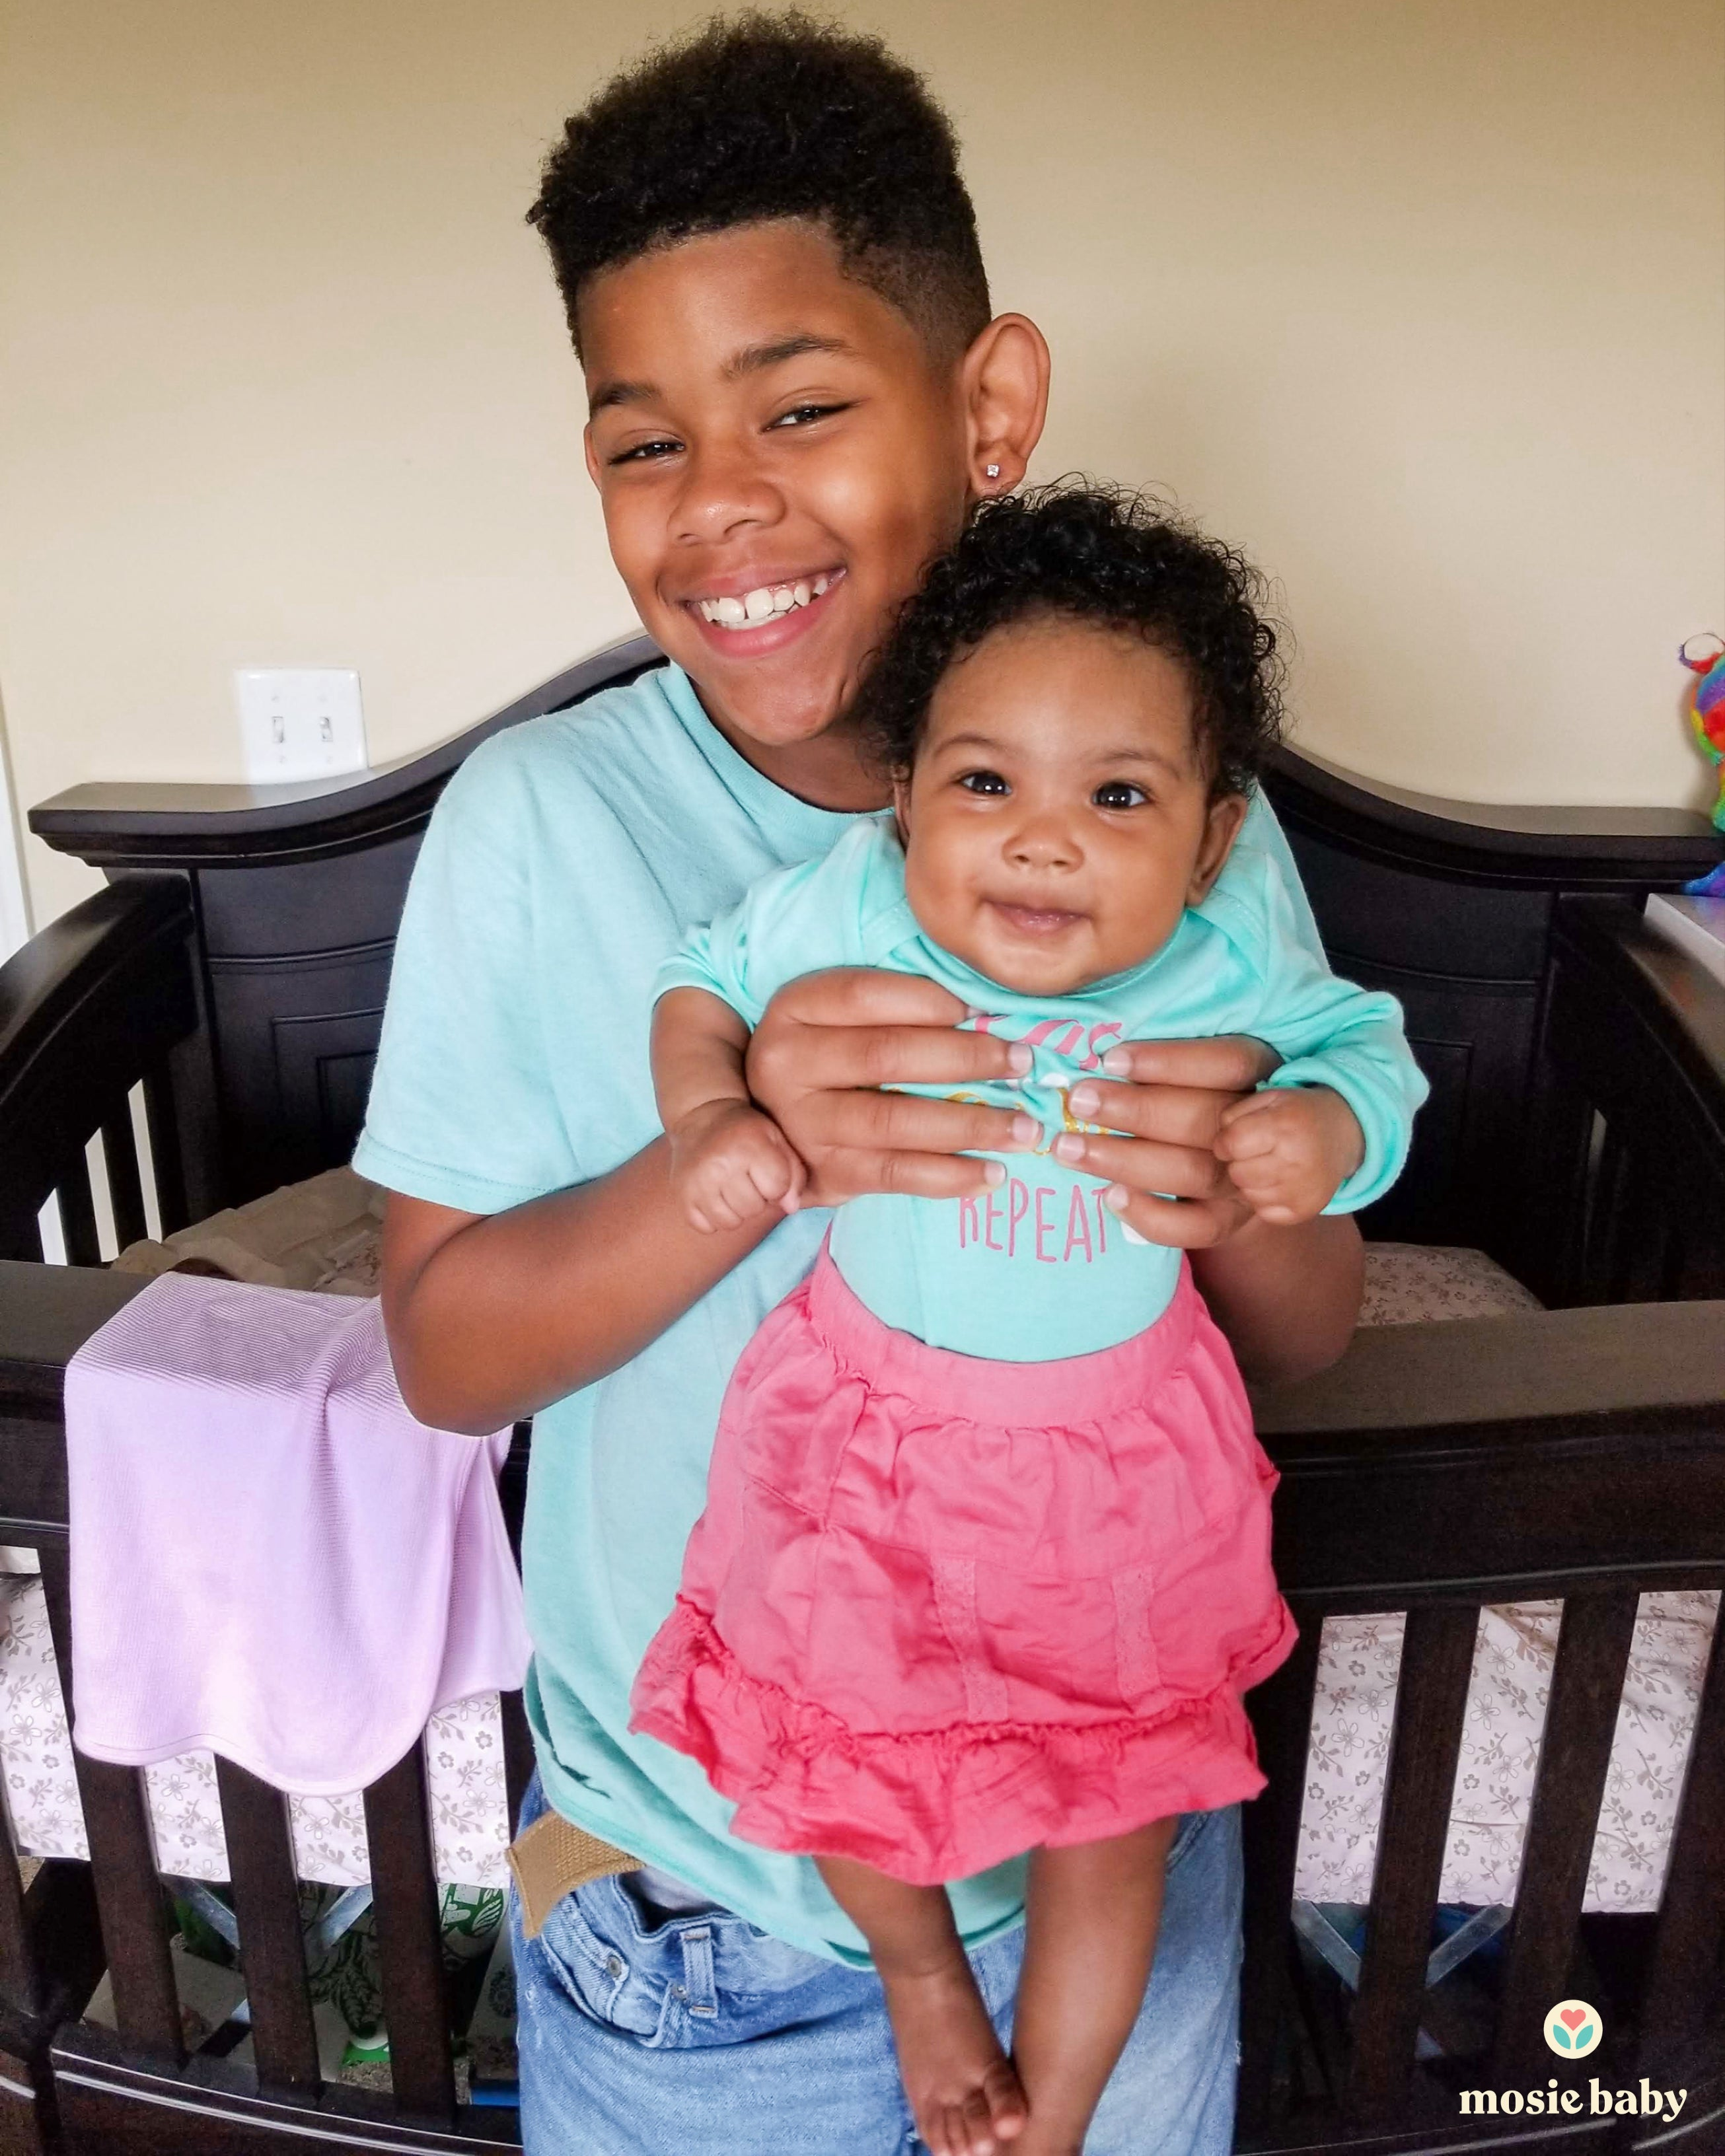 Brother holding his baby sister up and smiling